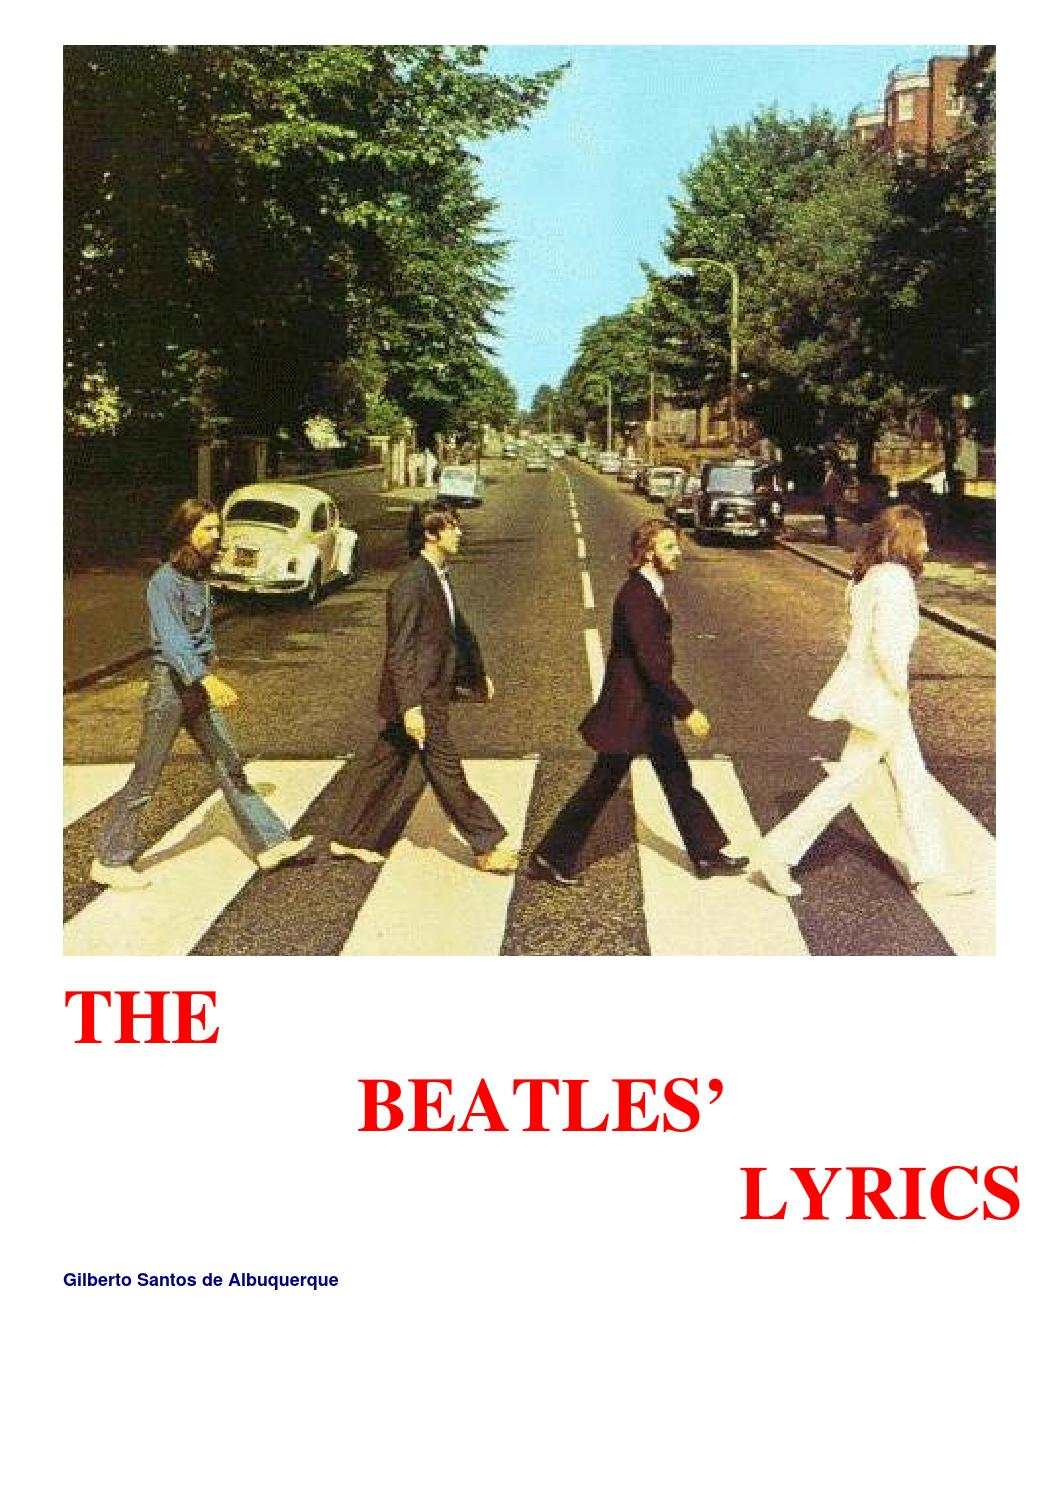 The beatles lyrics by Richard Joser - issuu